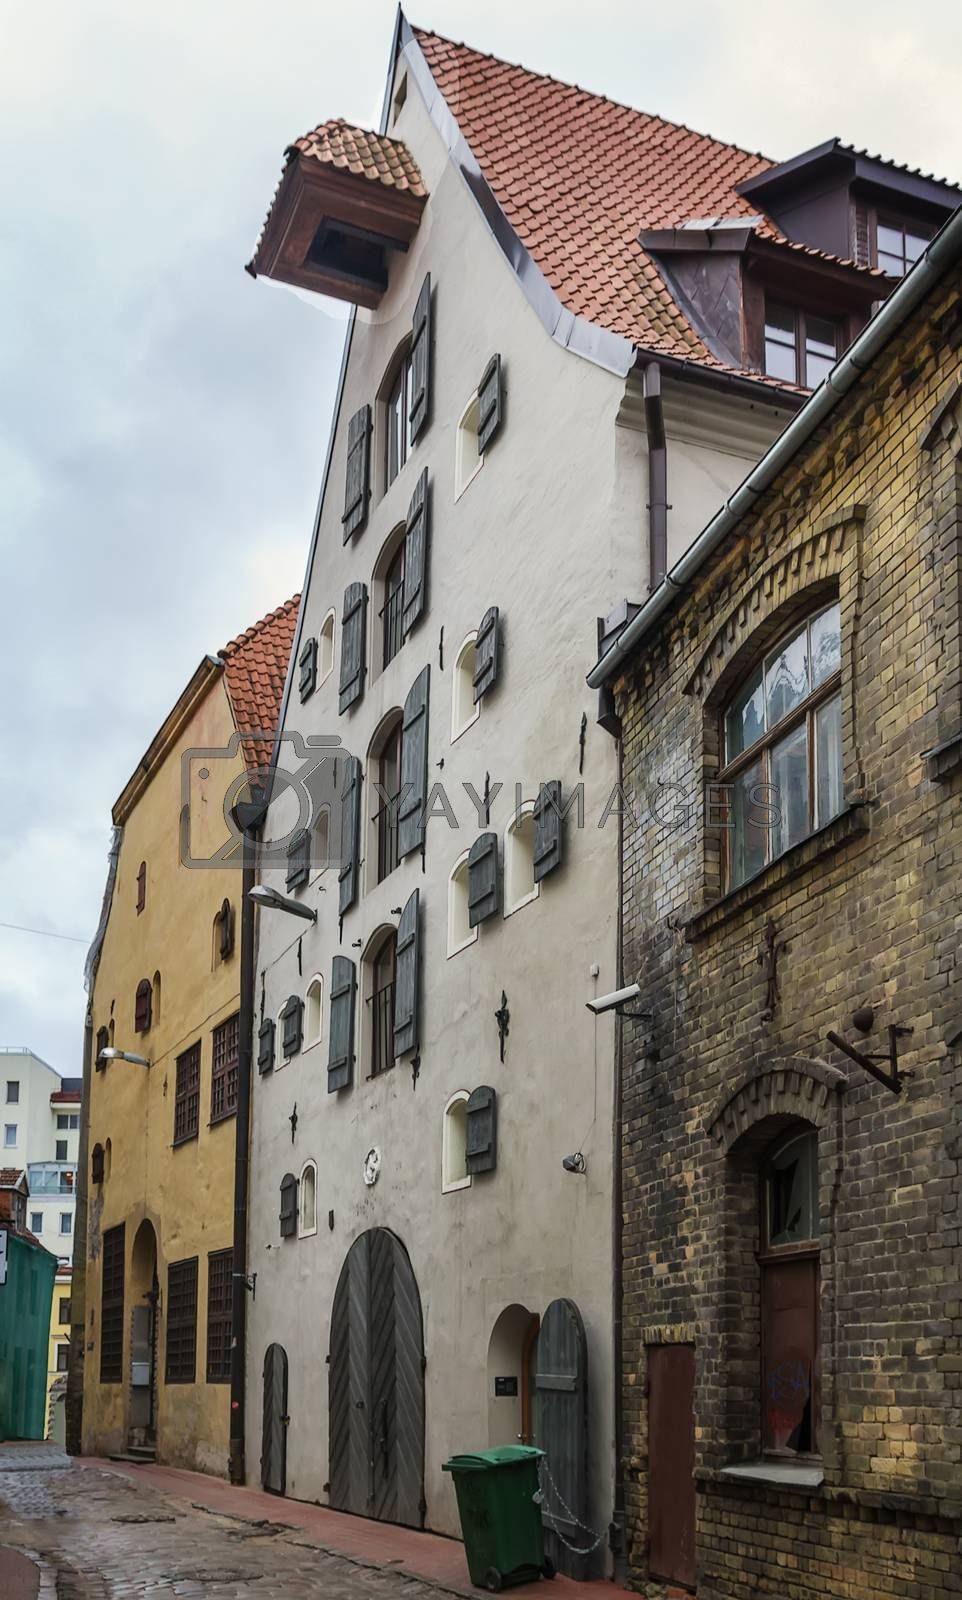 Street in the old town of Riga by borisb17